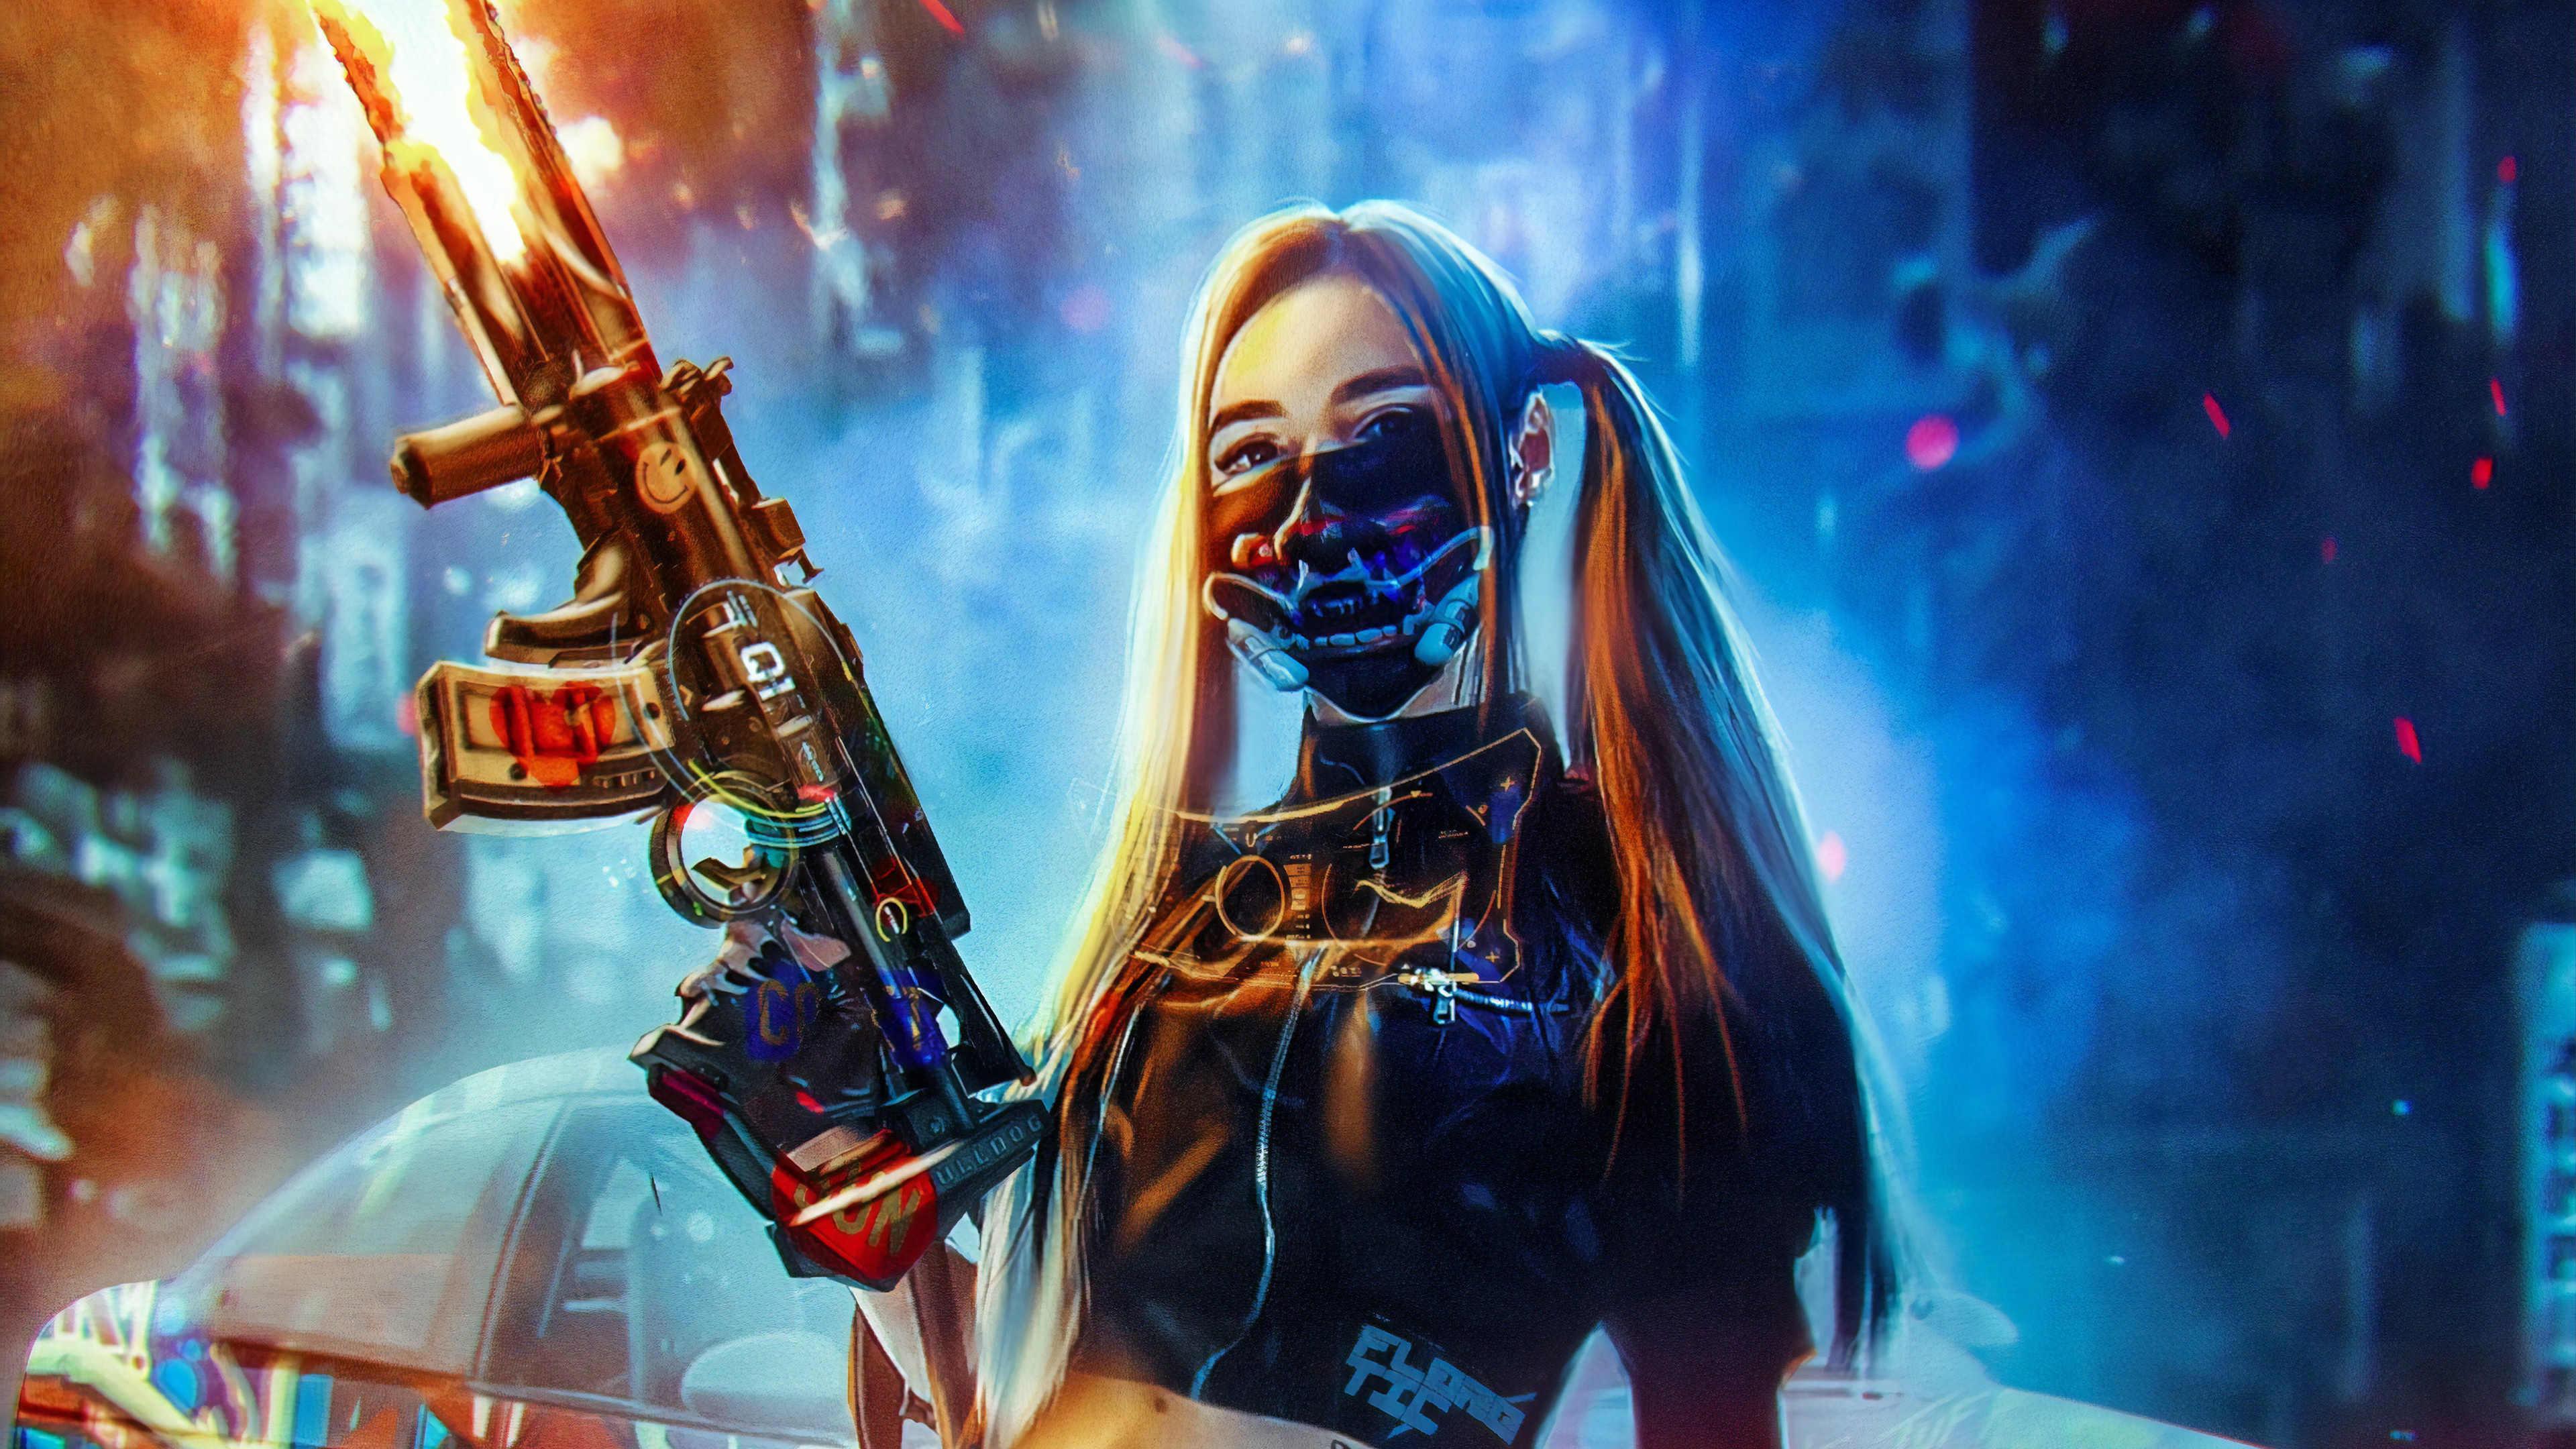 Cyberpunk 4k Ultra Hd Wallpaper Background Image 3840x2160 Id 1033560 Wallpaper Abyss